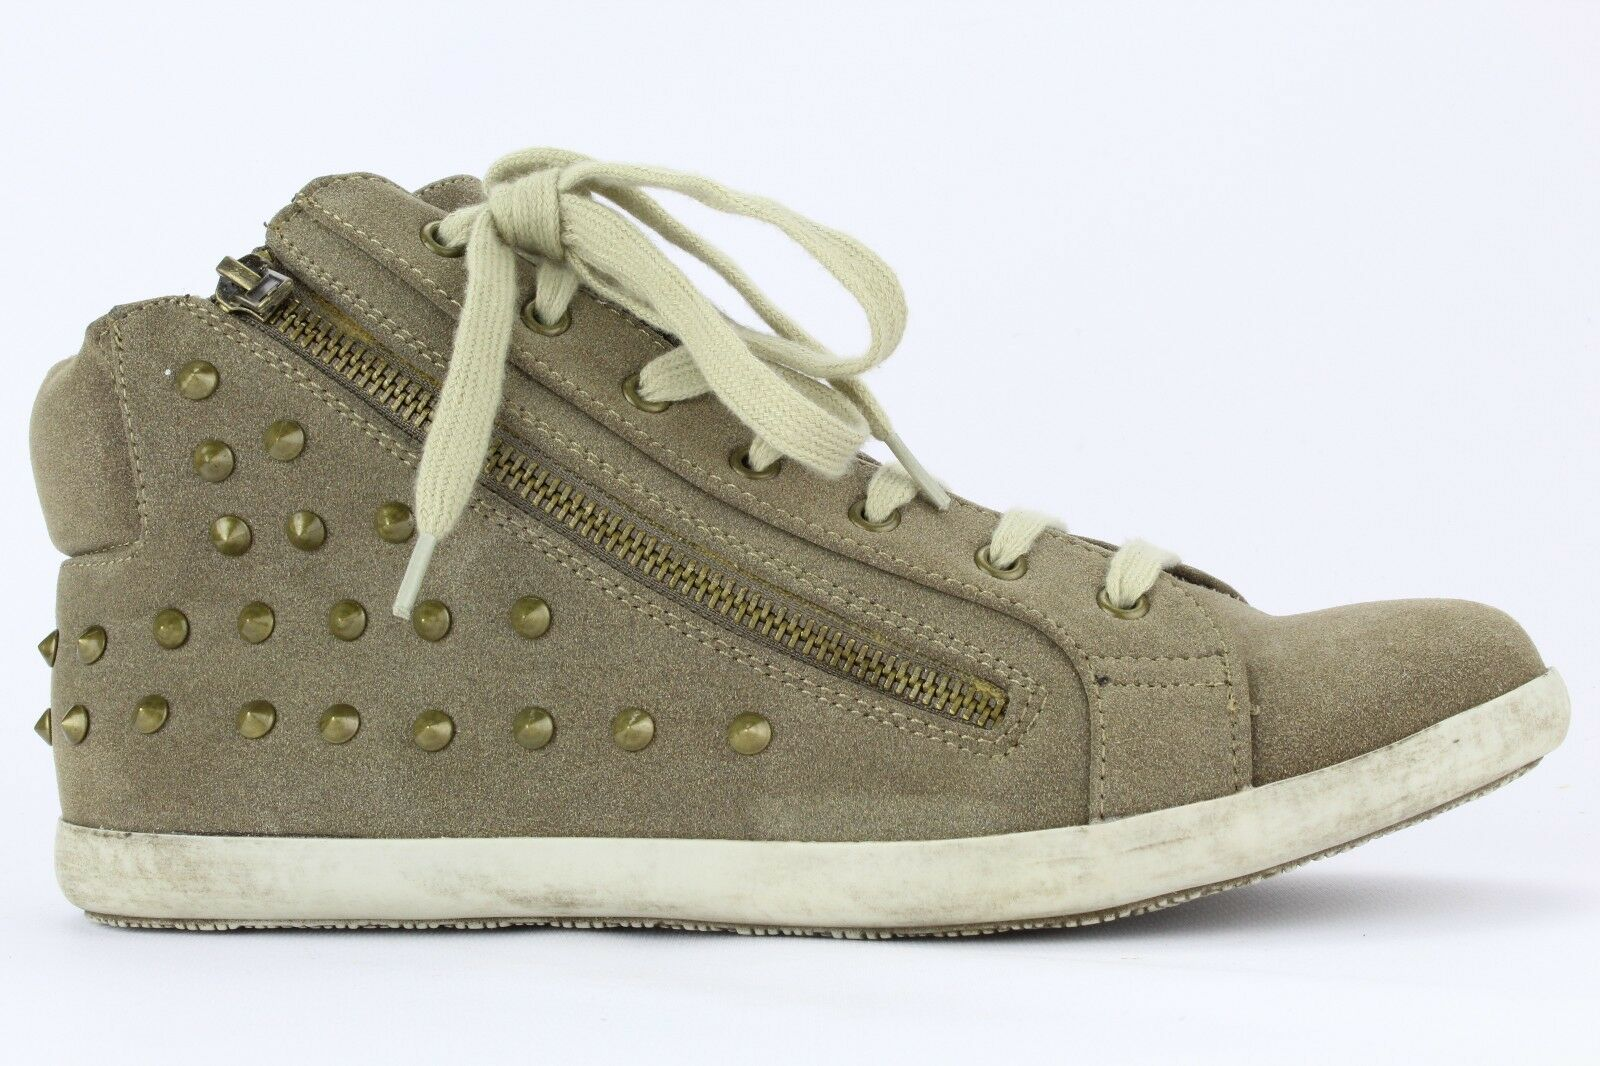 Michael Antonio Women's Taupe PU Paine Studded High Top Sneaker Size 8.5